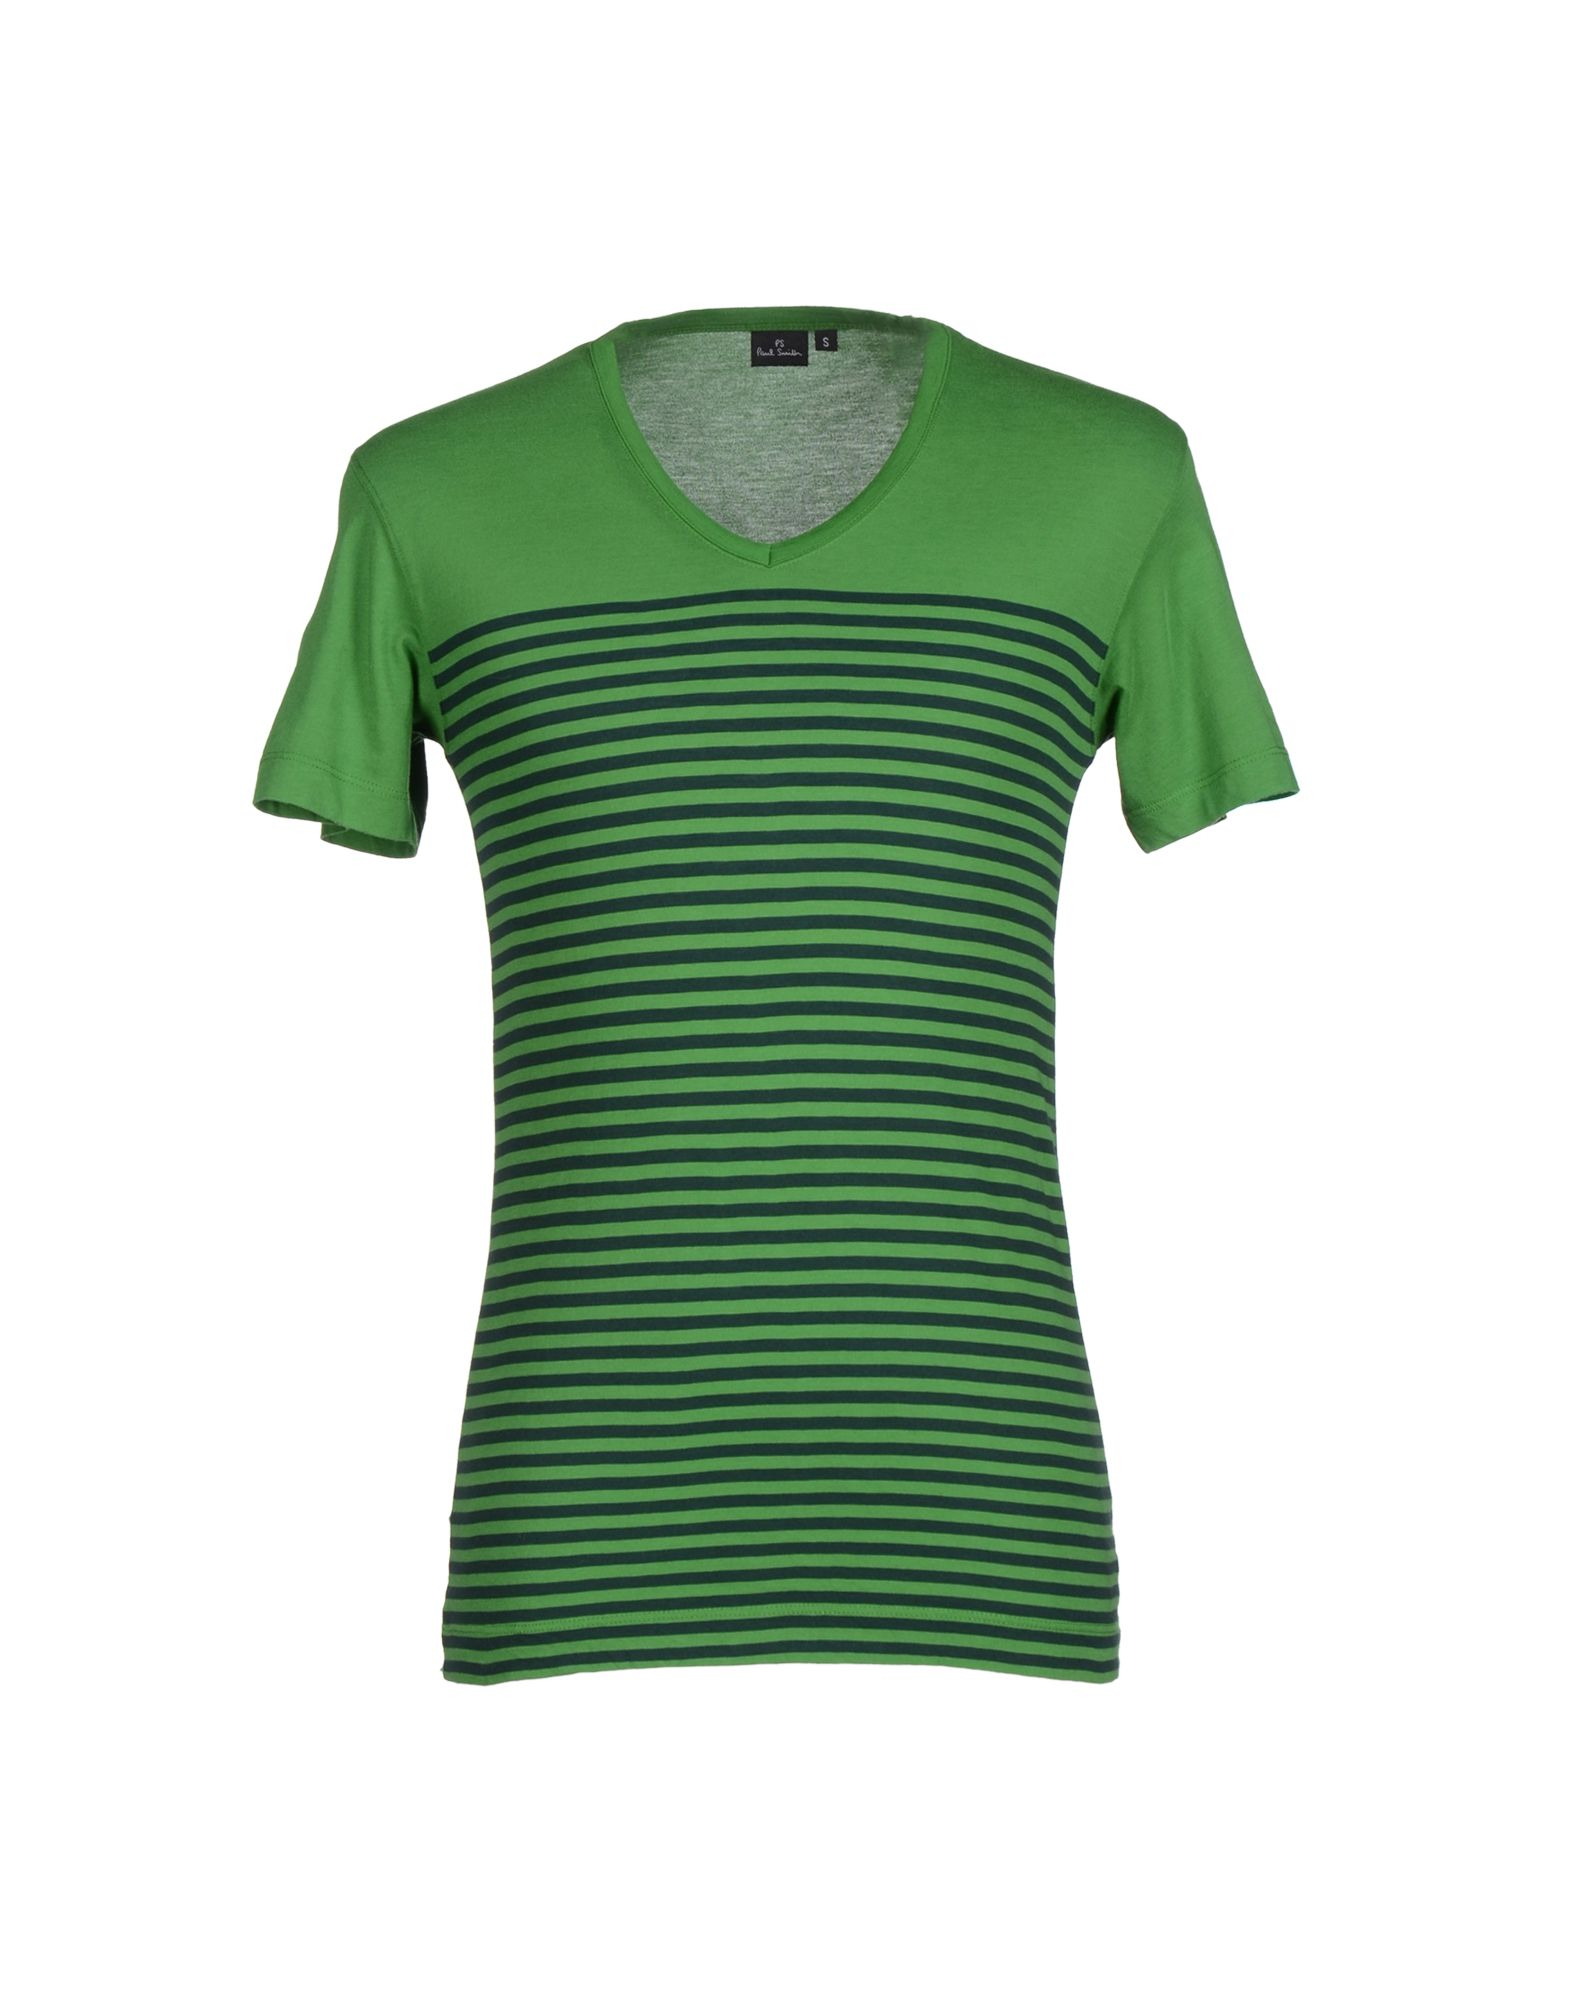 ps by paul smith t shirt in green for men lyst. Black Bedroom Furniture Sets. Home Design Ideas